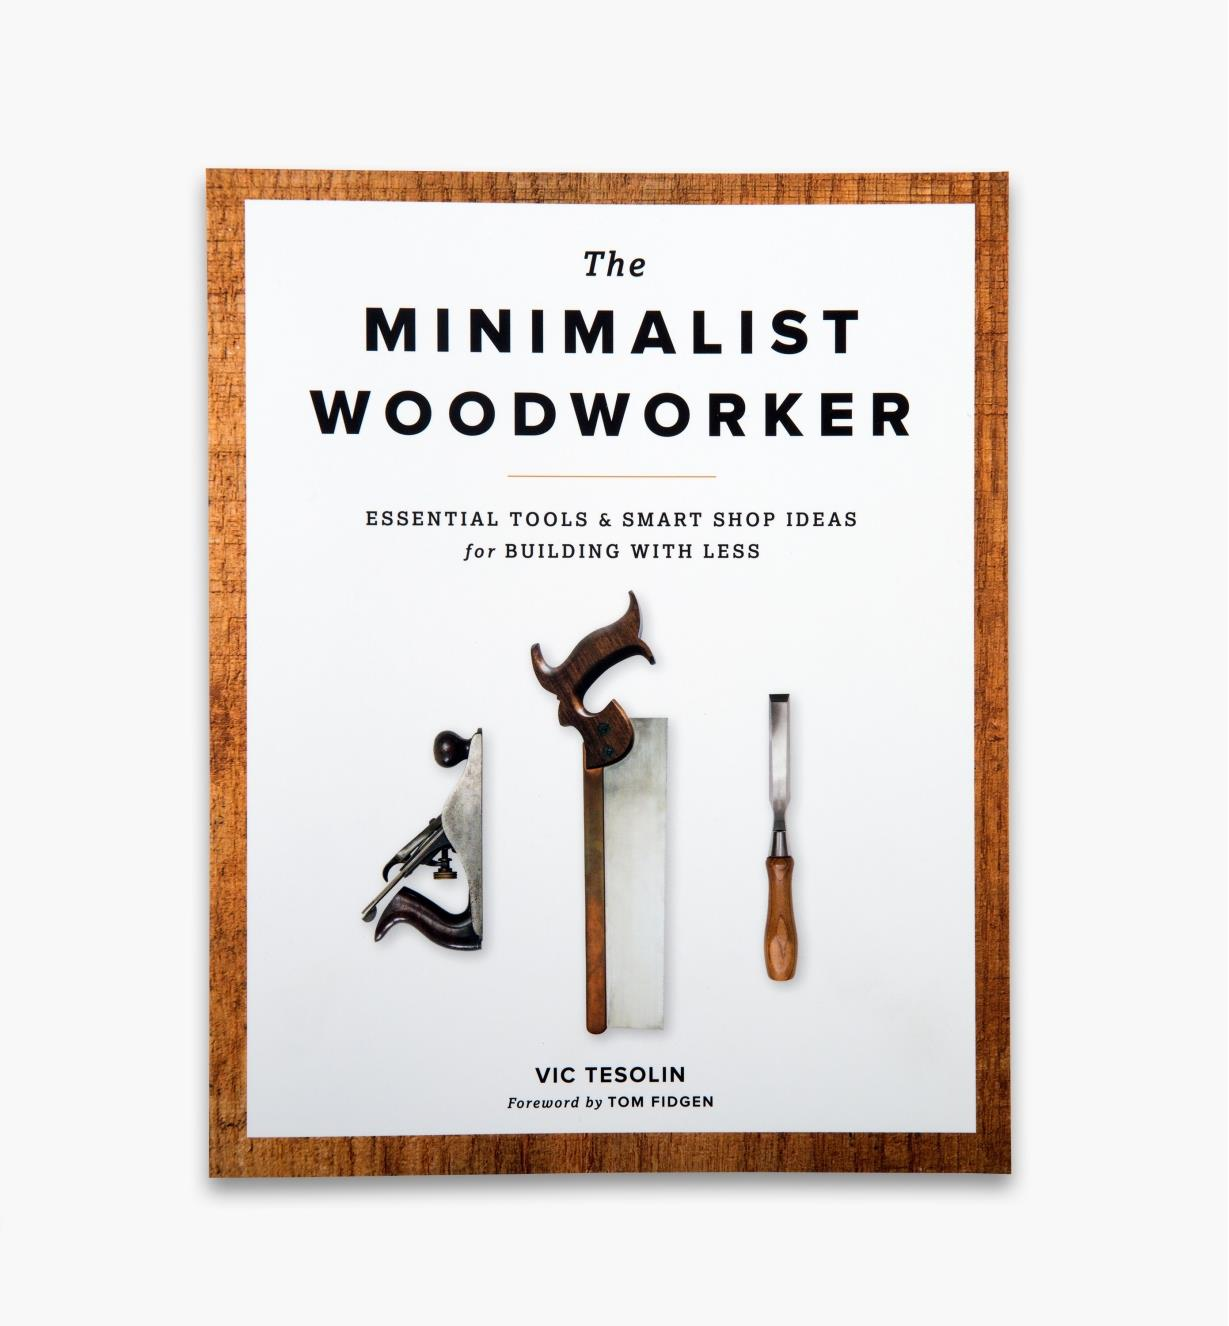 49L2733 - The Minimalist Woodworker